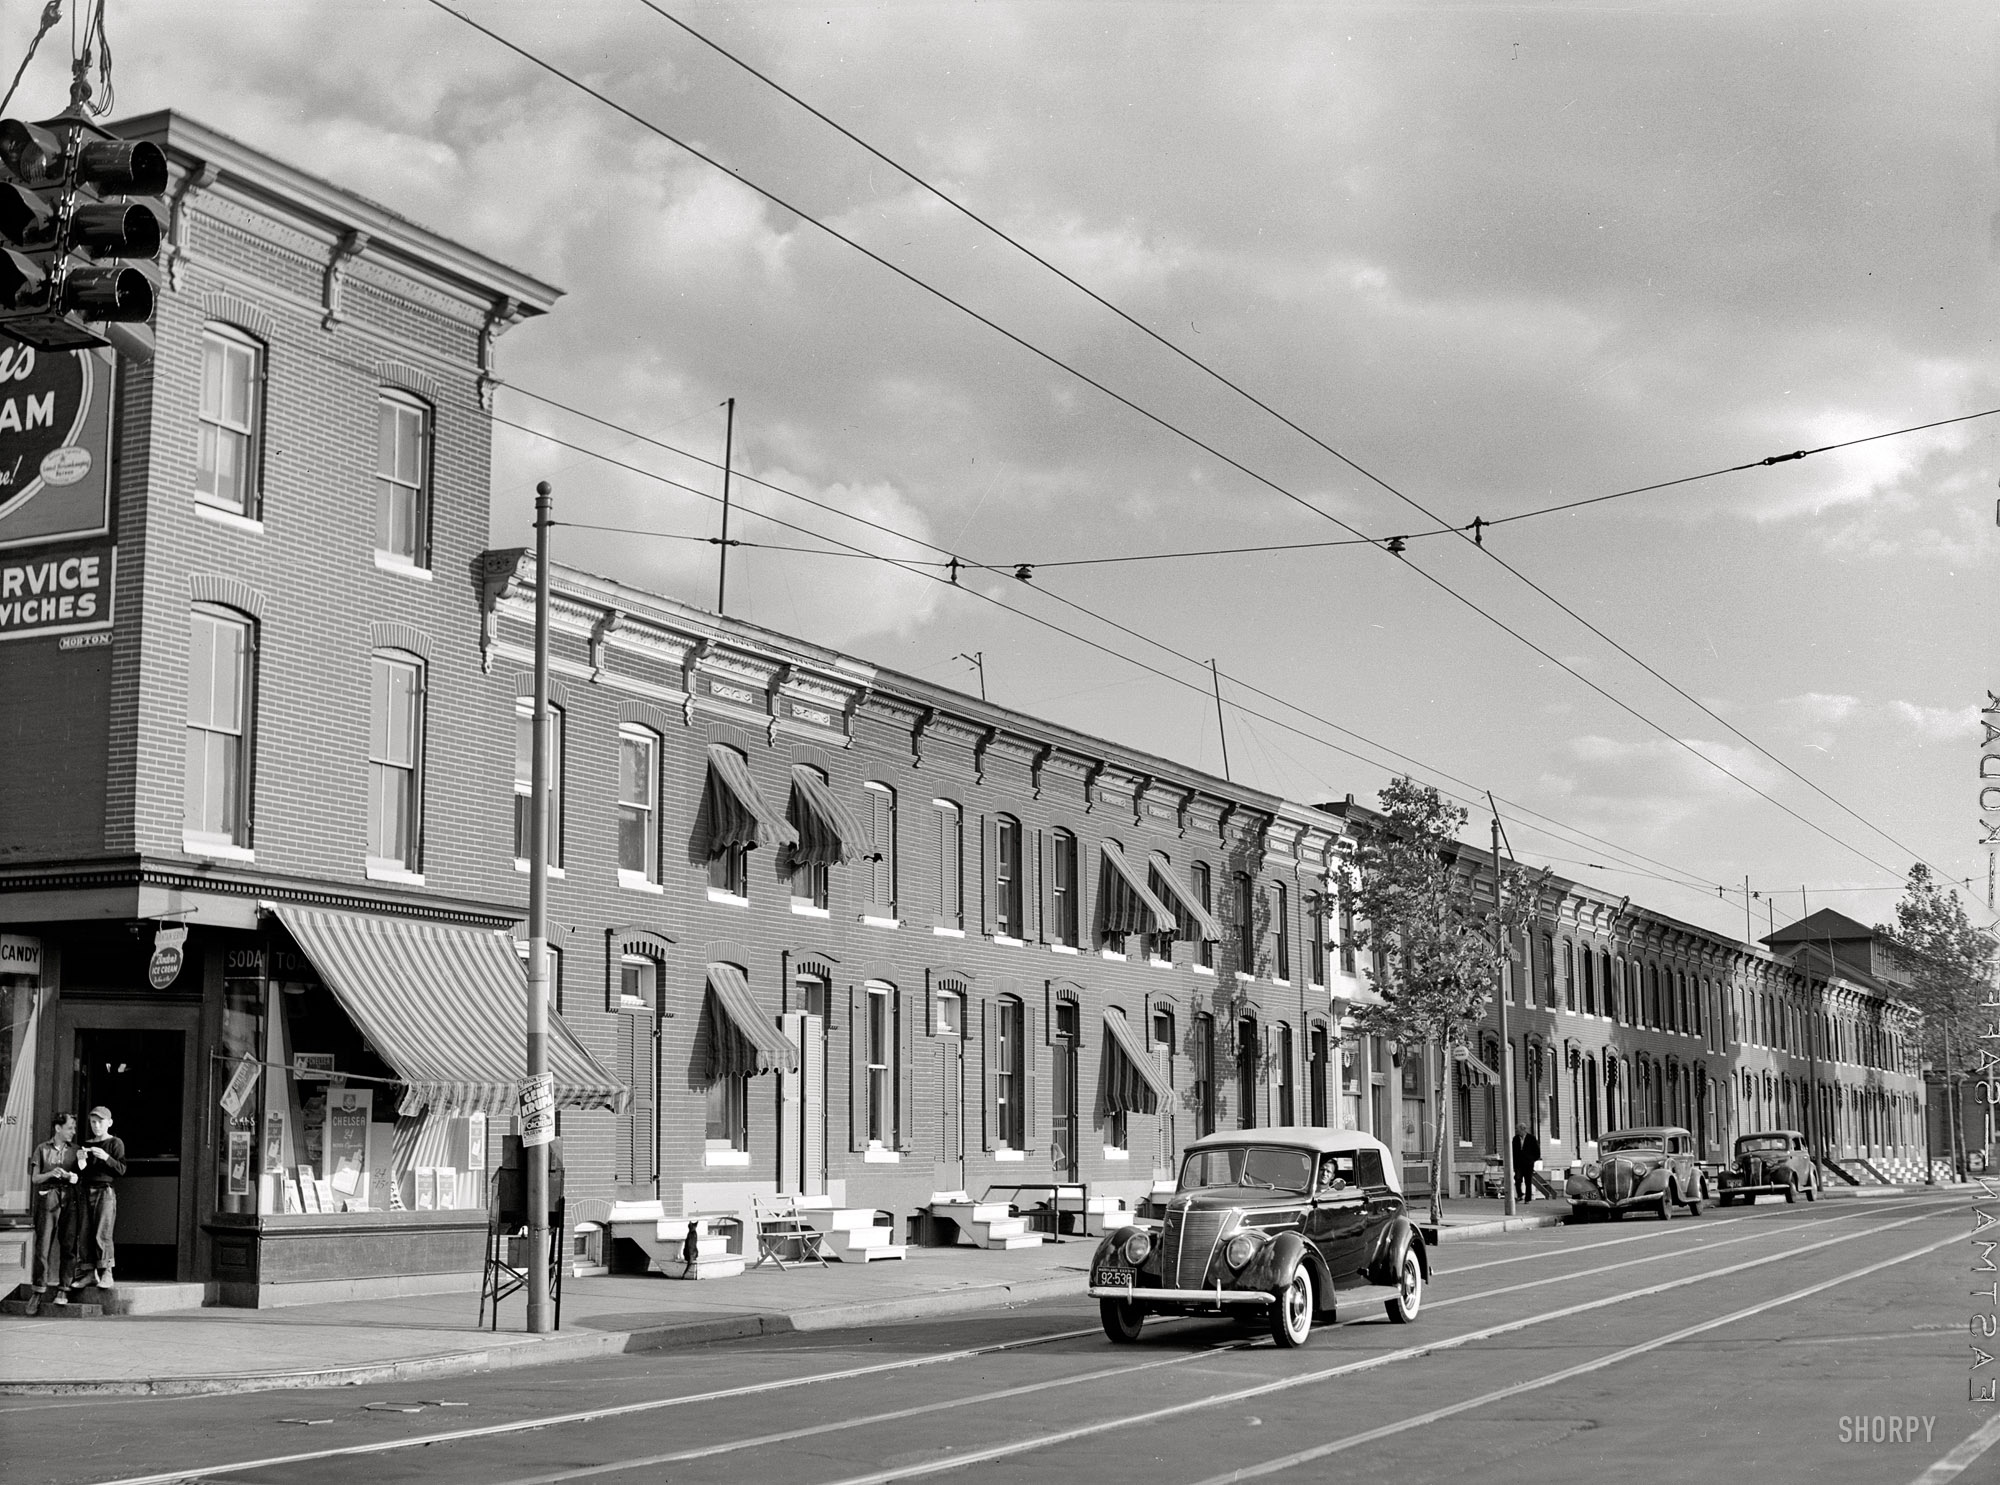 Great 1940s Photo of Row Houses